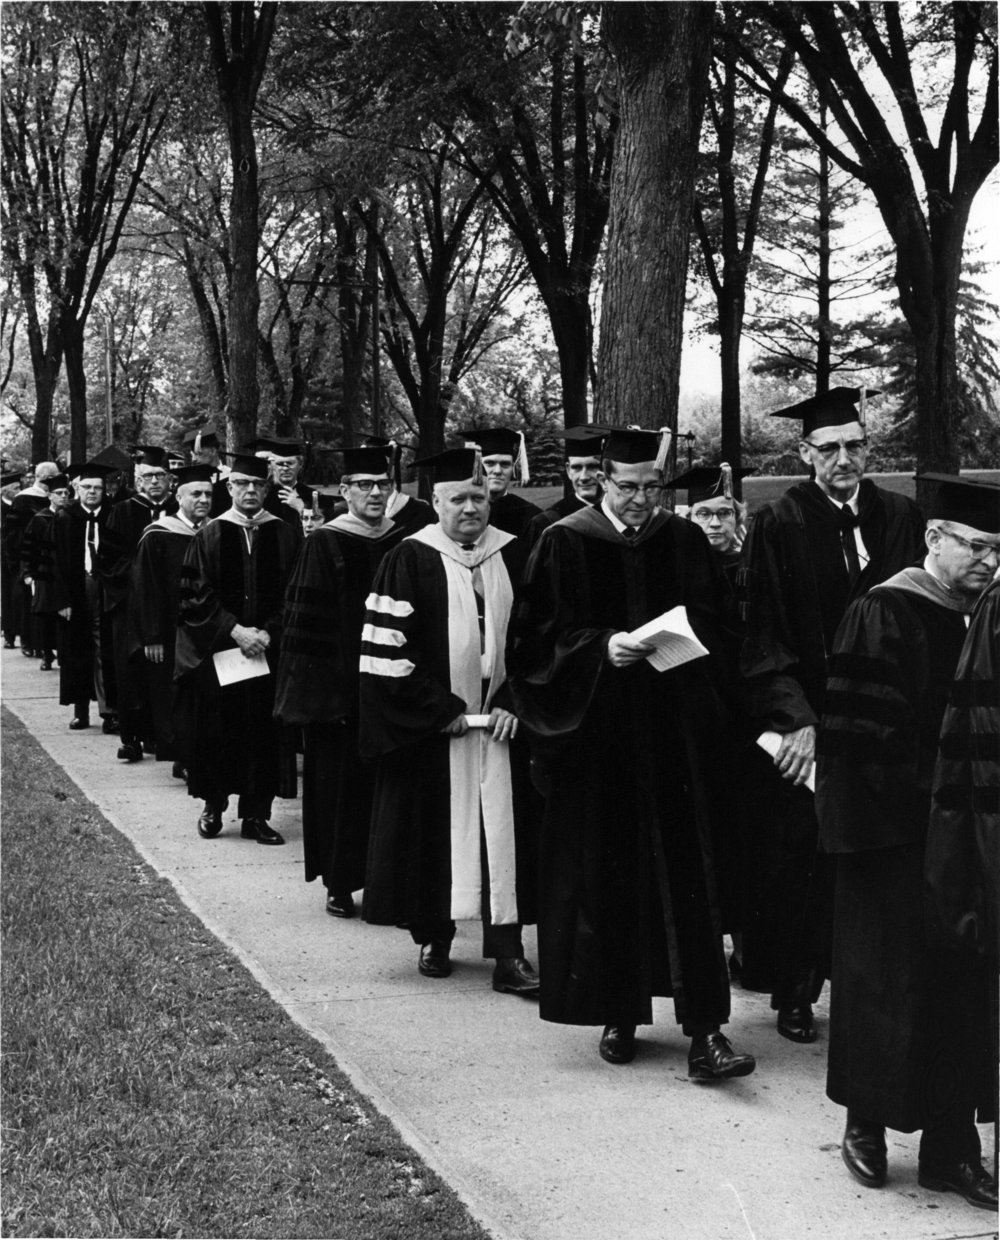 Faculty entering Zorn arena, ca. 1960's